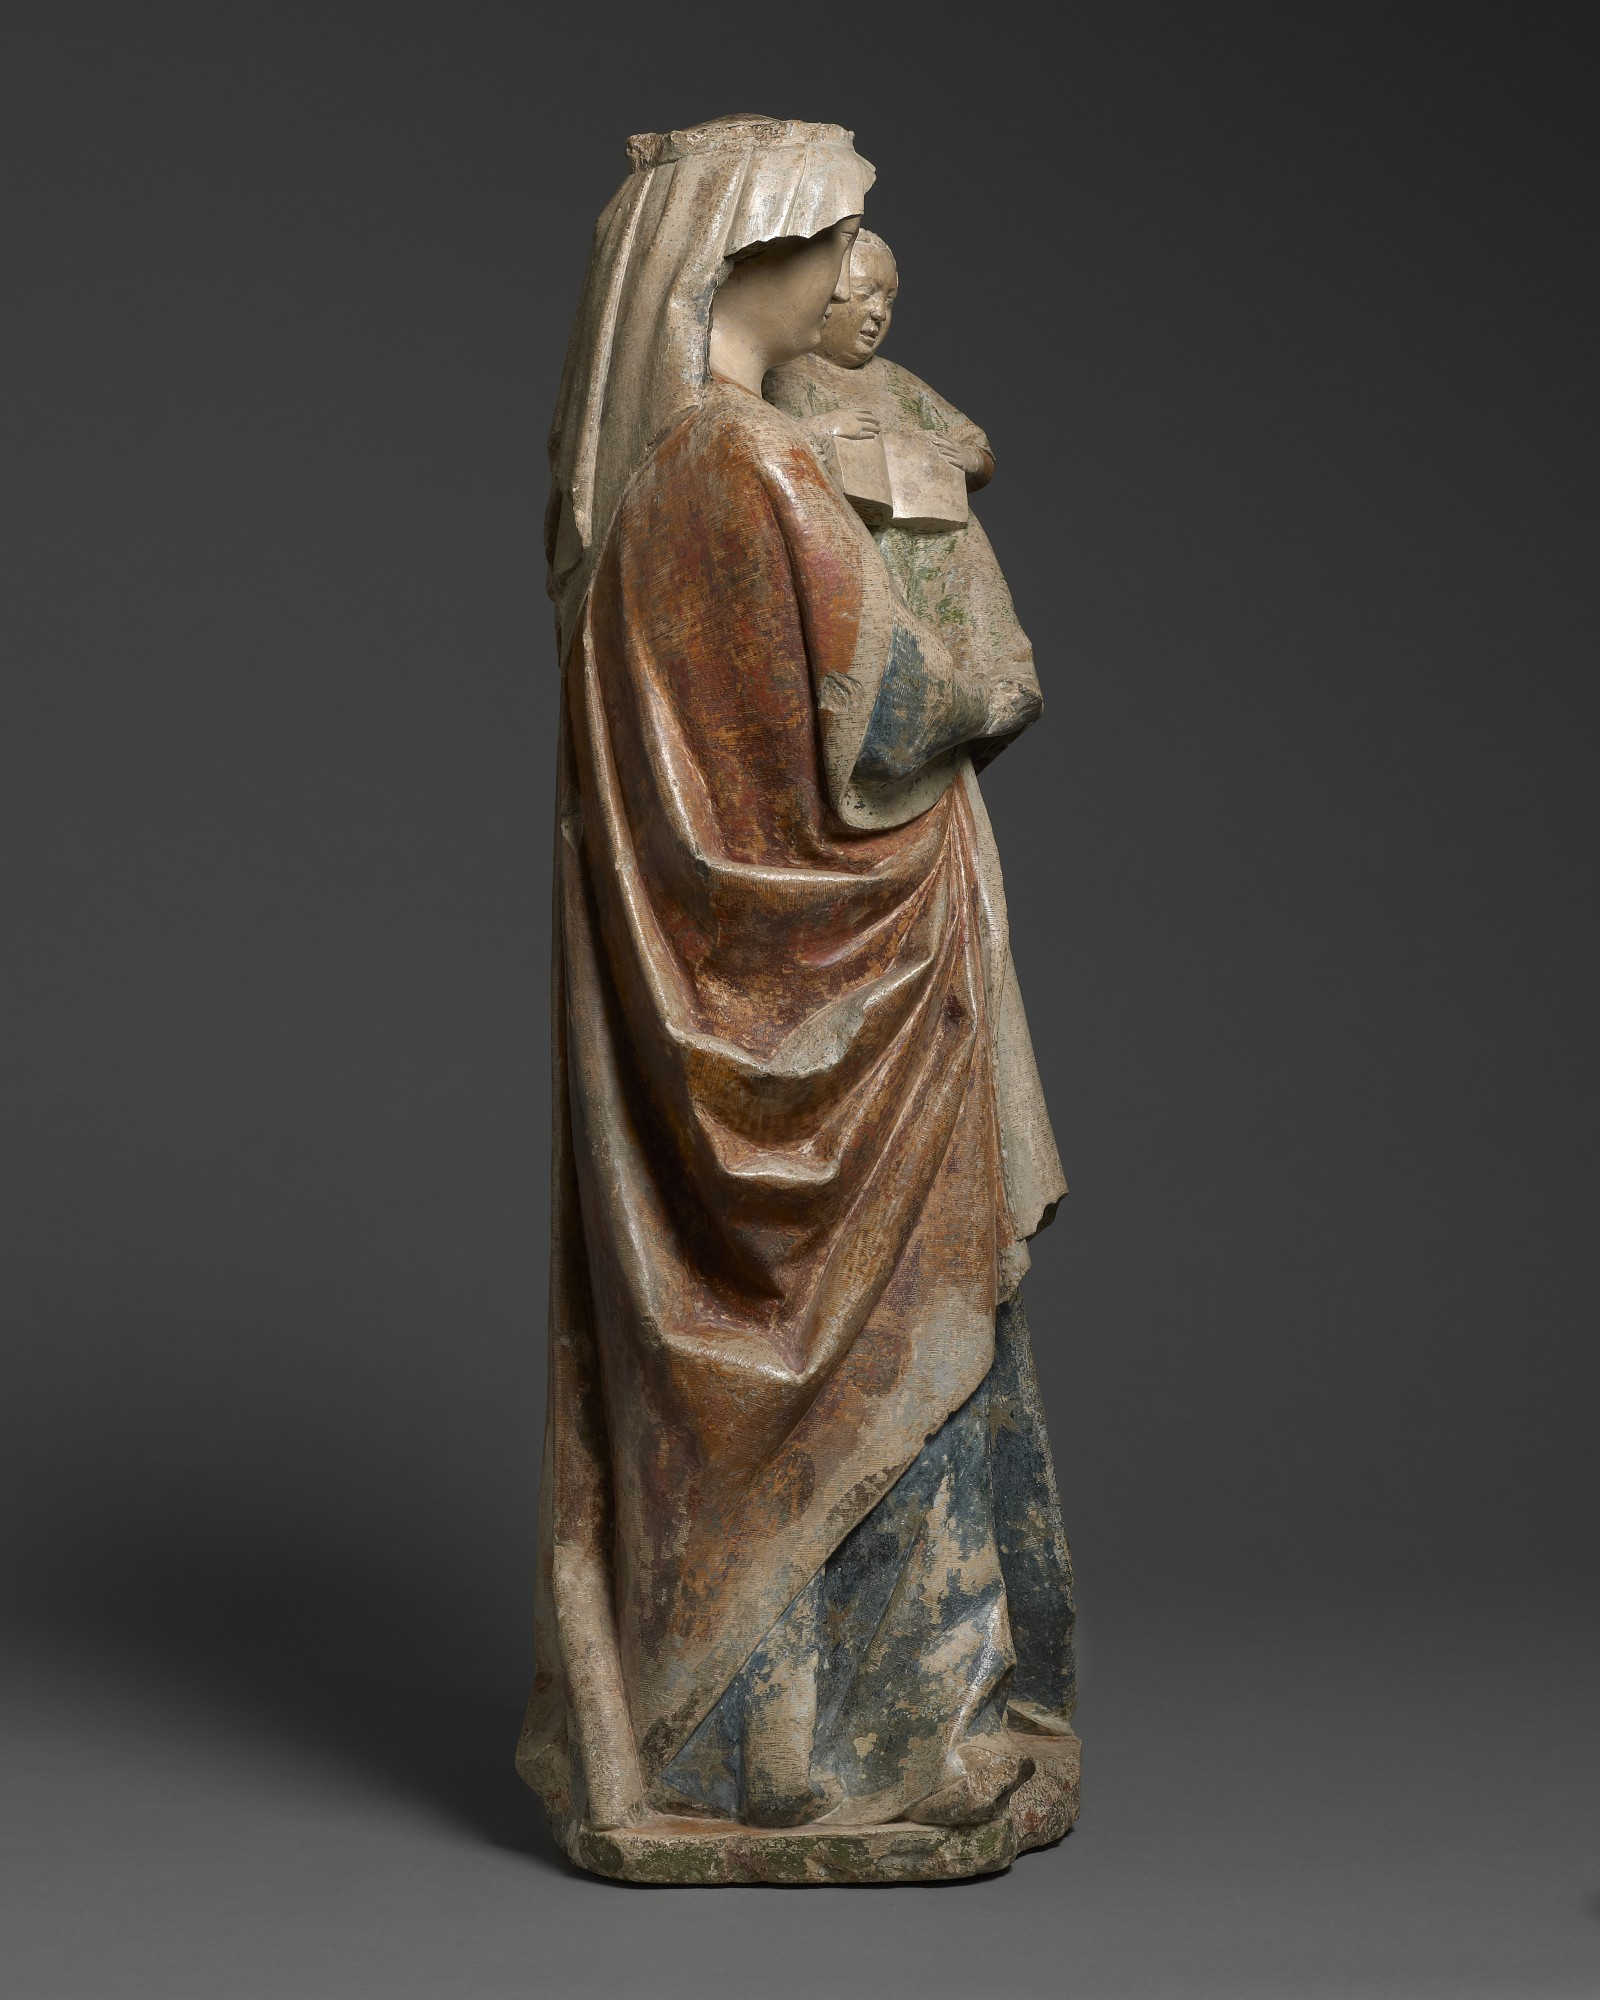 Virgin and Child, France, Lorraine, c. 1310